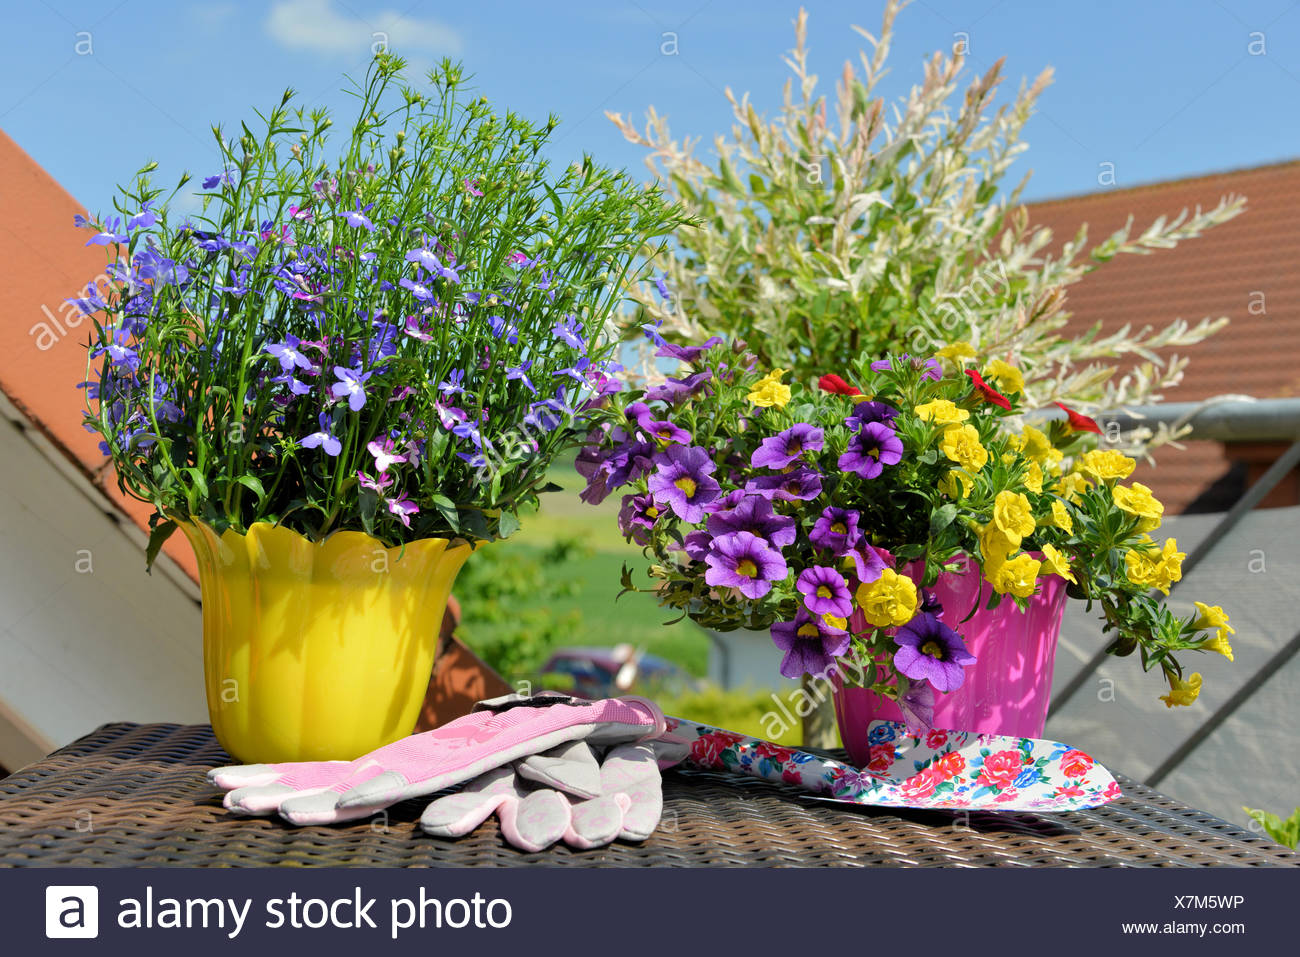 summer flowers in pots on the balcony - Stock Image